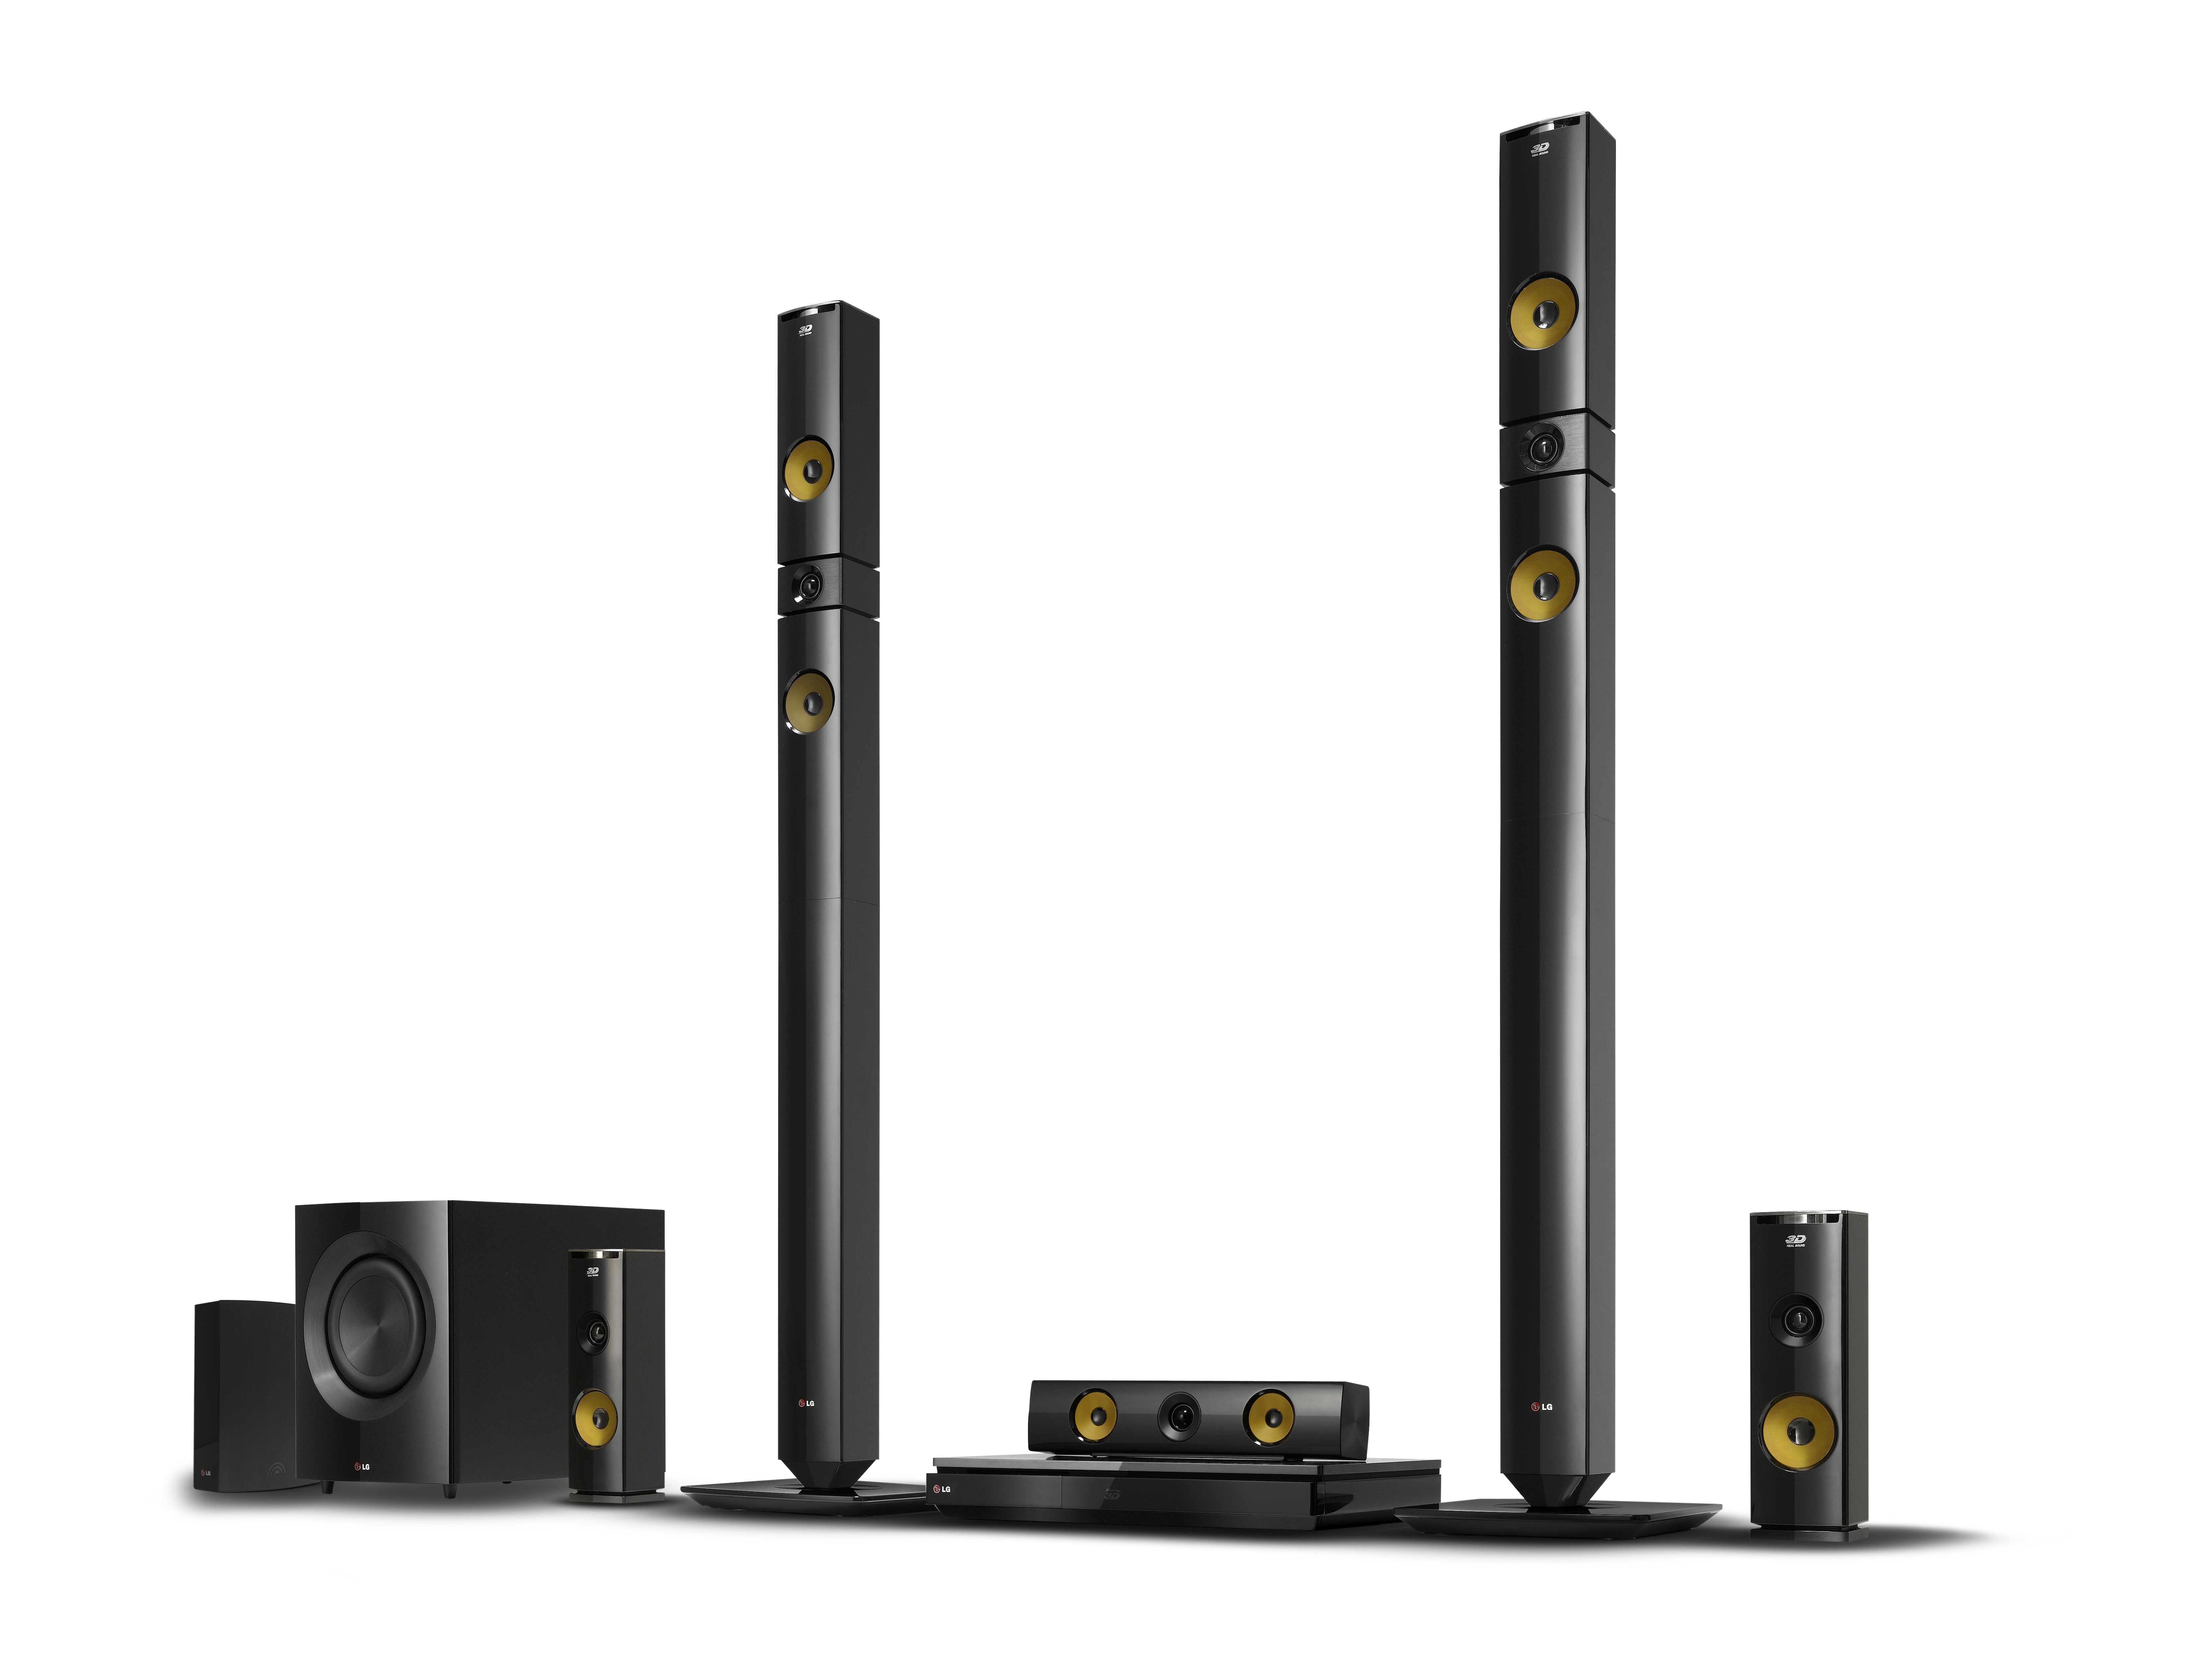 LG 2013 audio and video lineup including BH9430PW 9.1-channel speaker system, NB4530A Sound Bar, BP730 Blu-ray player with Smart TV features, the ND8630 Dual Docking Speaker and the NP6630 Portable Speaker.